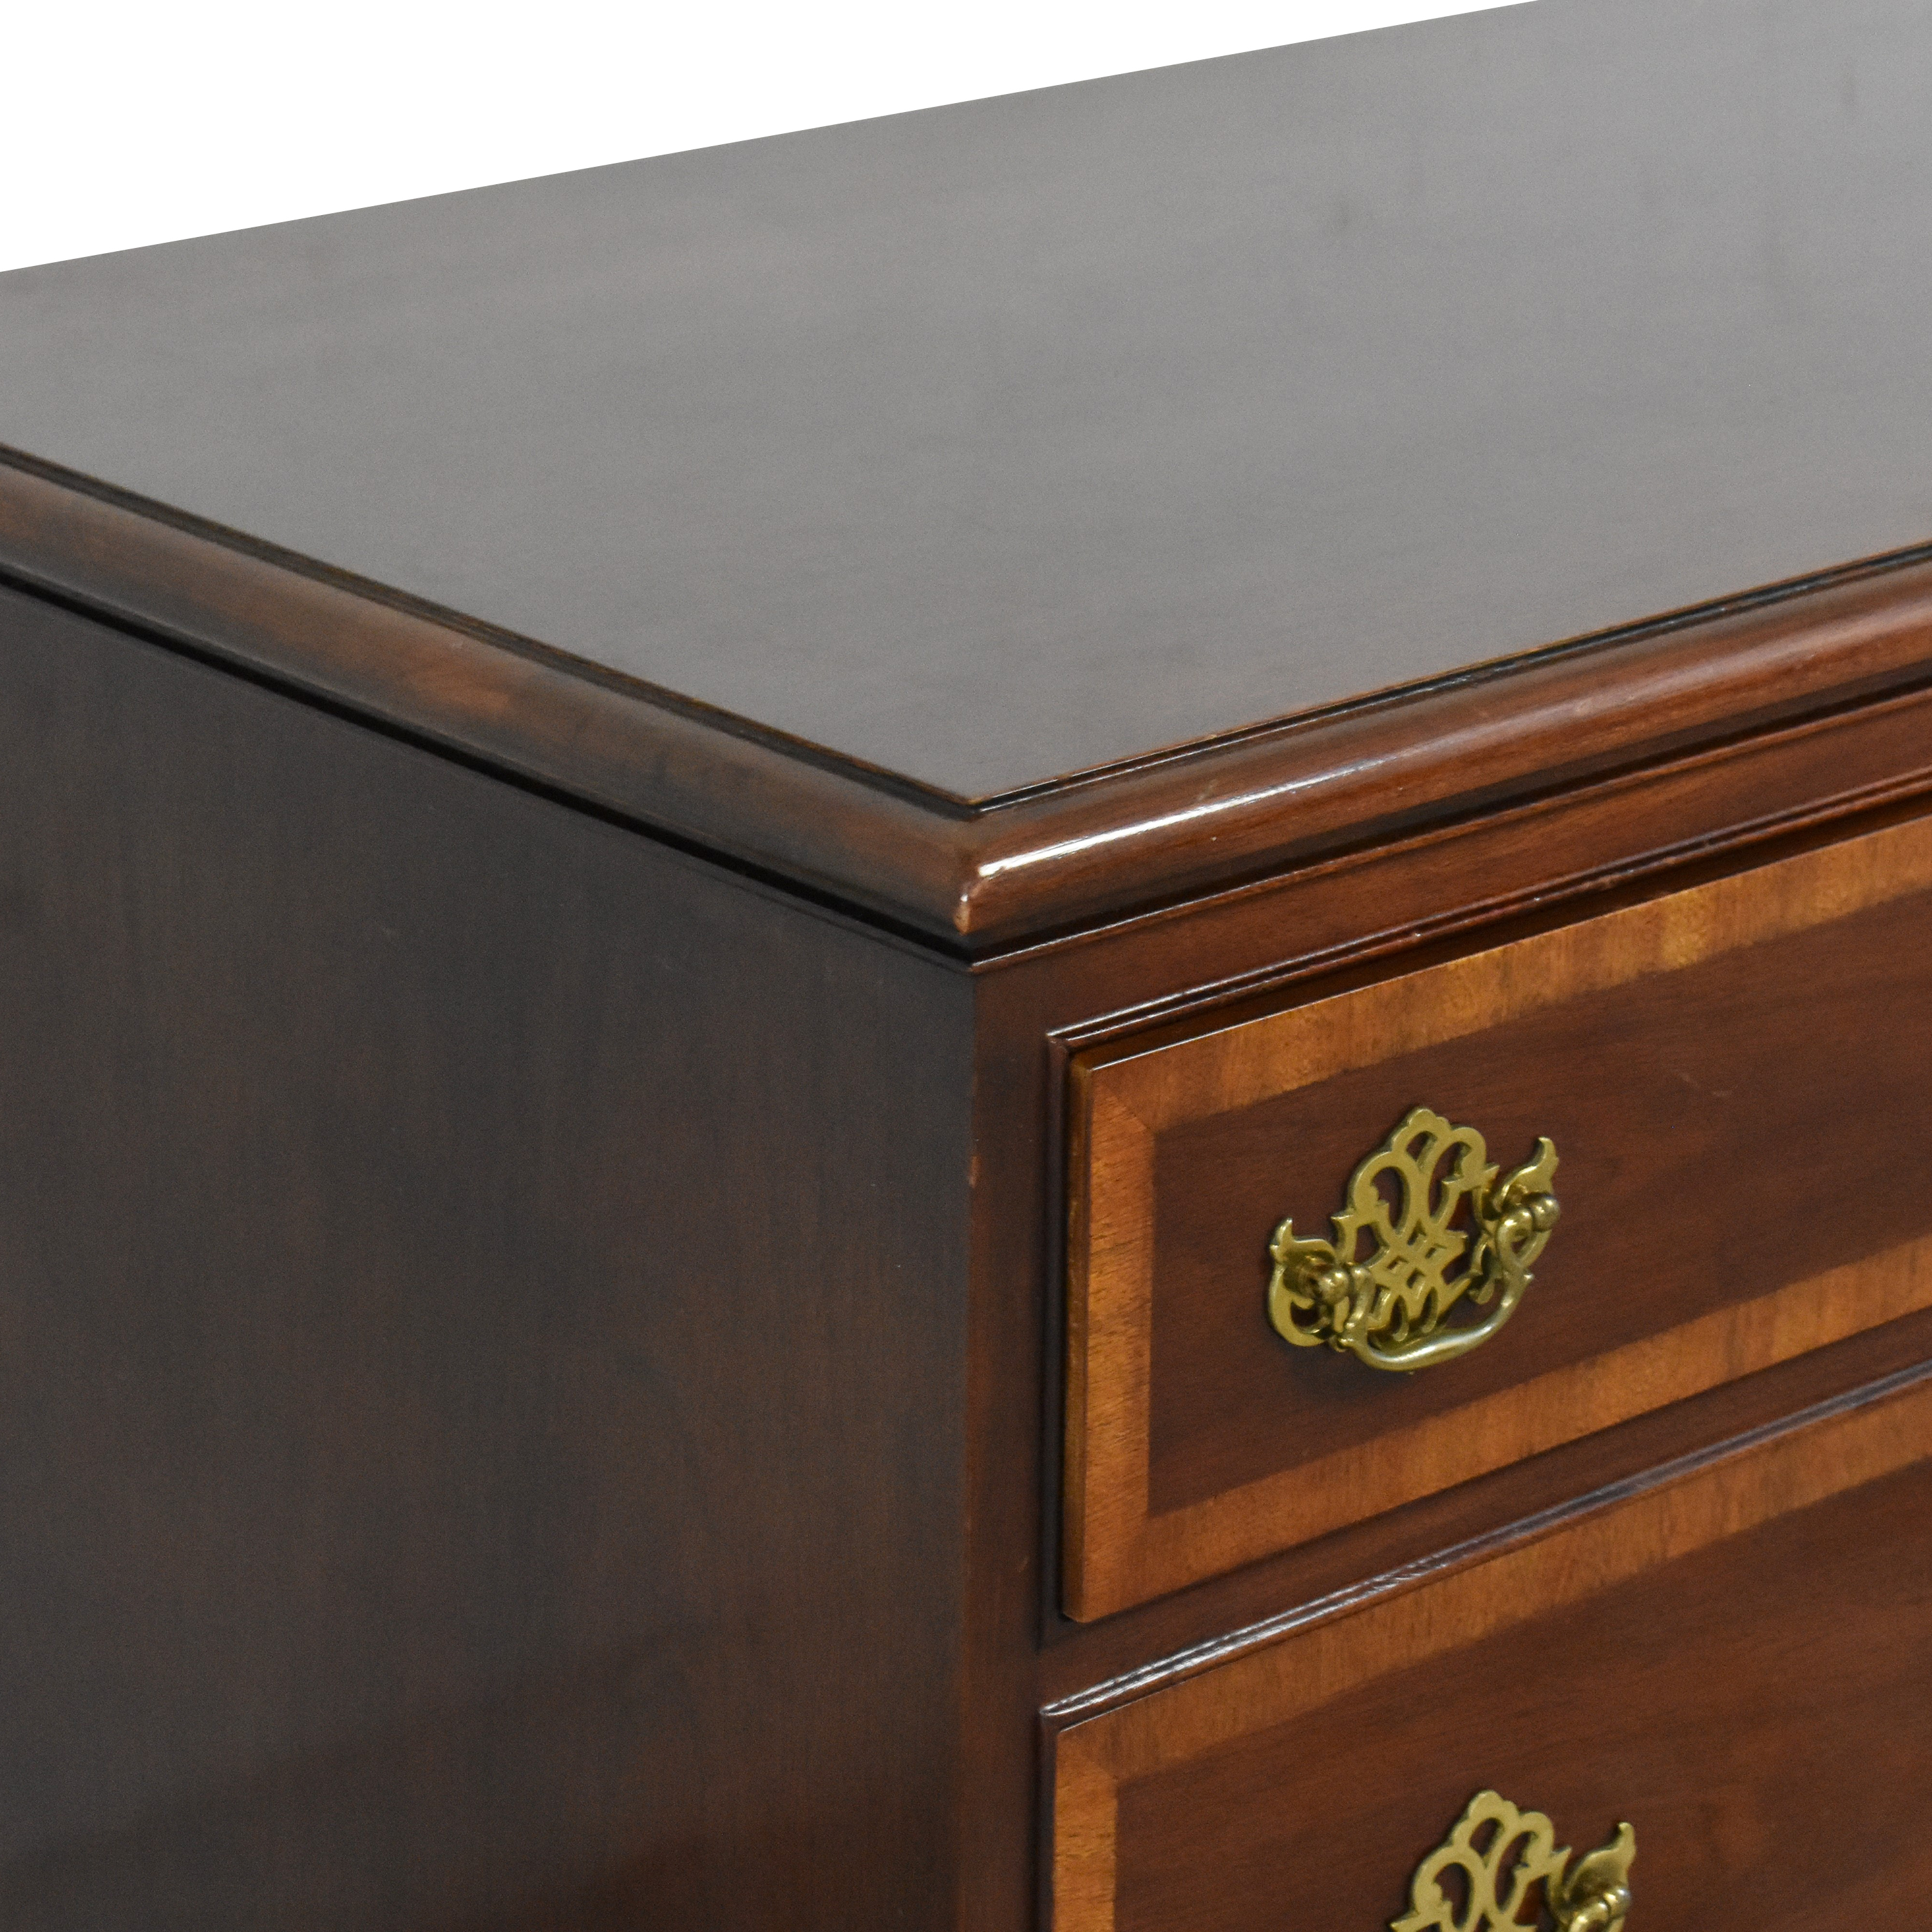 Hickory Chair Hickory Chair American Masterpiece Collection Wide Dresser brown